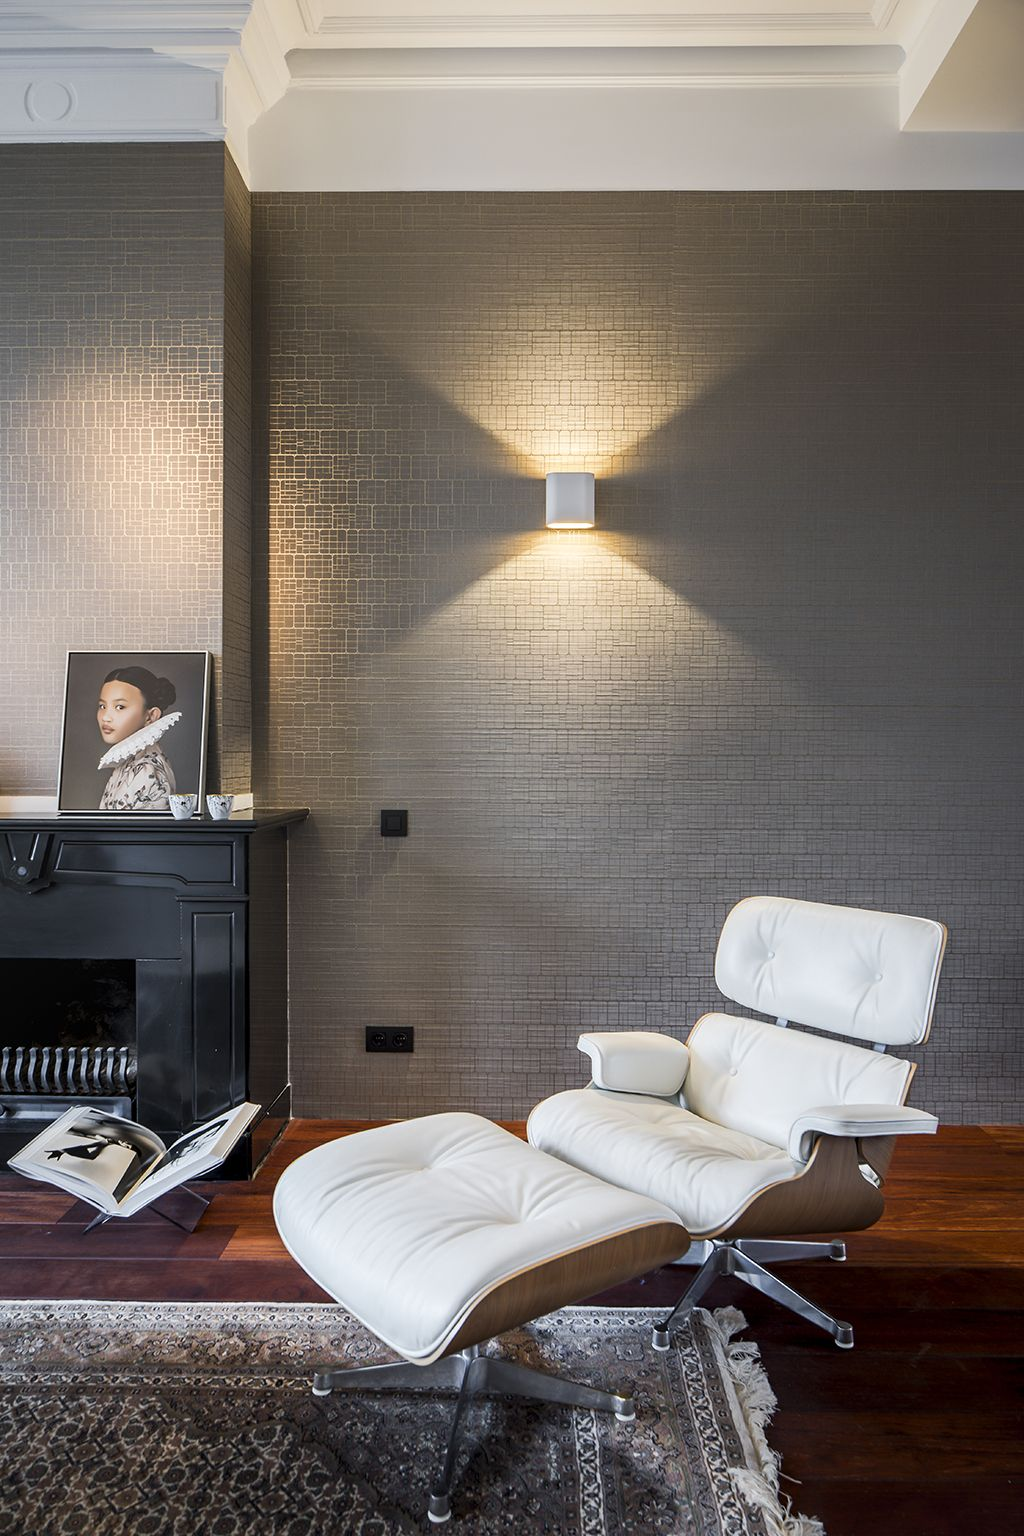 Our Supermodular Duell Lighting At A Private Residence In The Hague The Netherlands Living Room Lighting Architectural Lighting Fixtures Residential Interior #unique #living #room #lighting